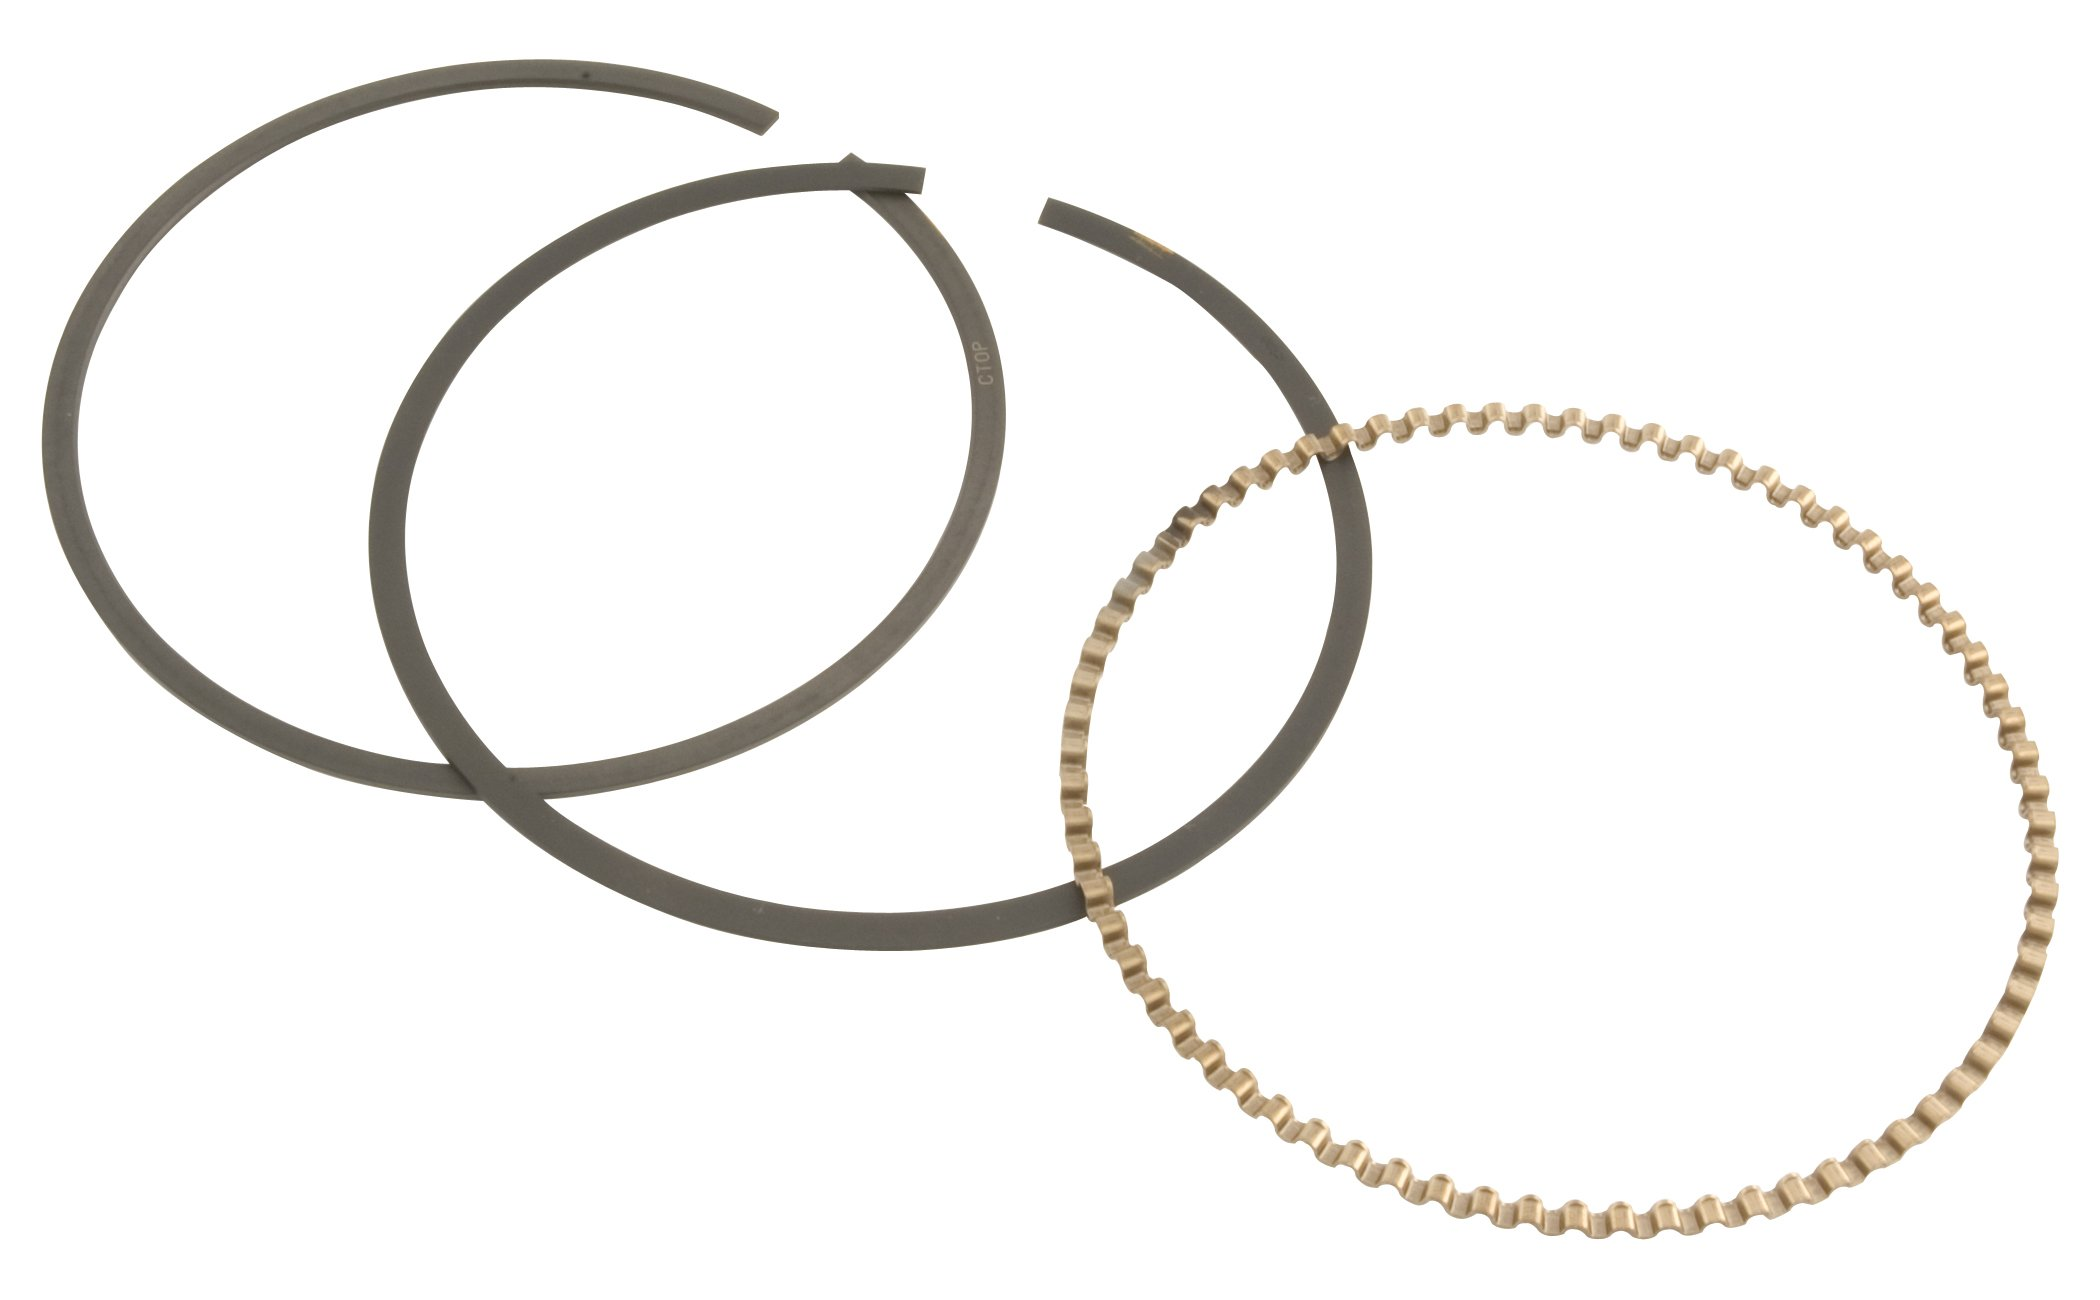 Mahle Motorsports 4035MS-15 4.035'' Bore 1.5-1.5 - 3.0mm Piston Ring Set by Mahle